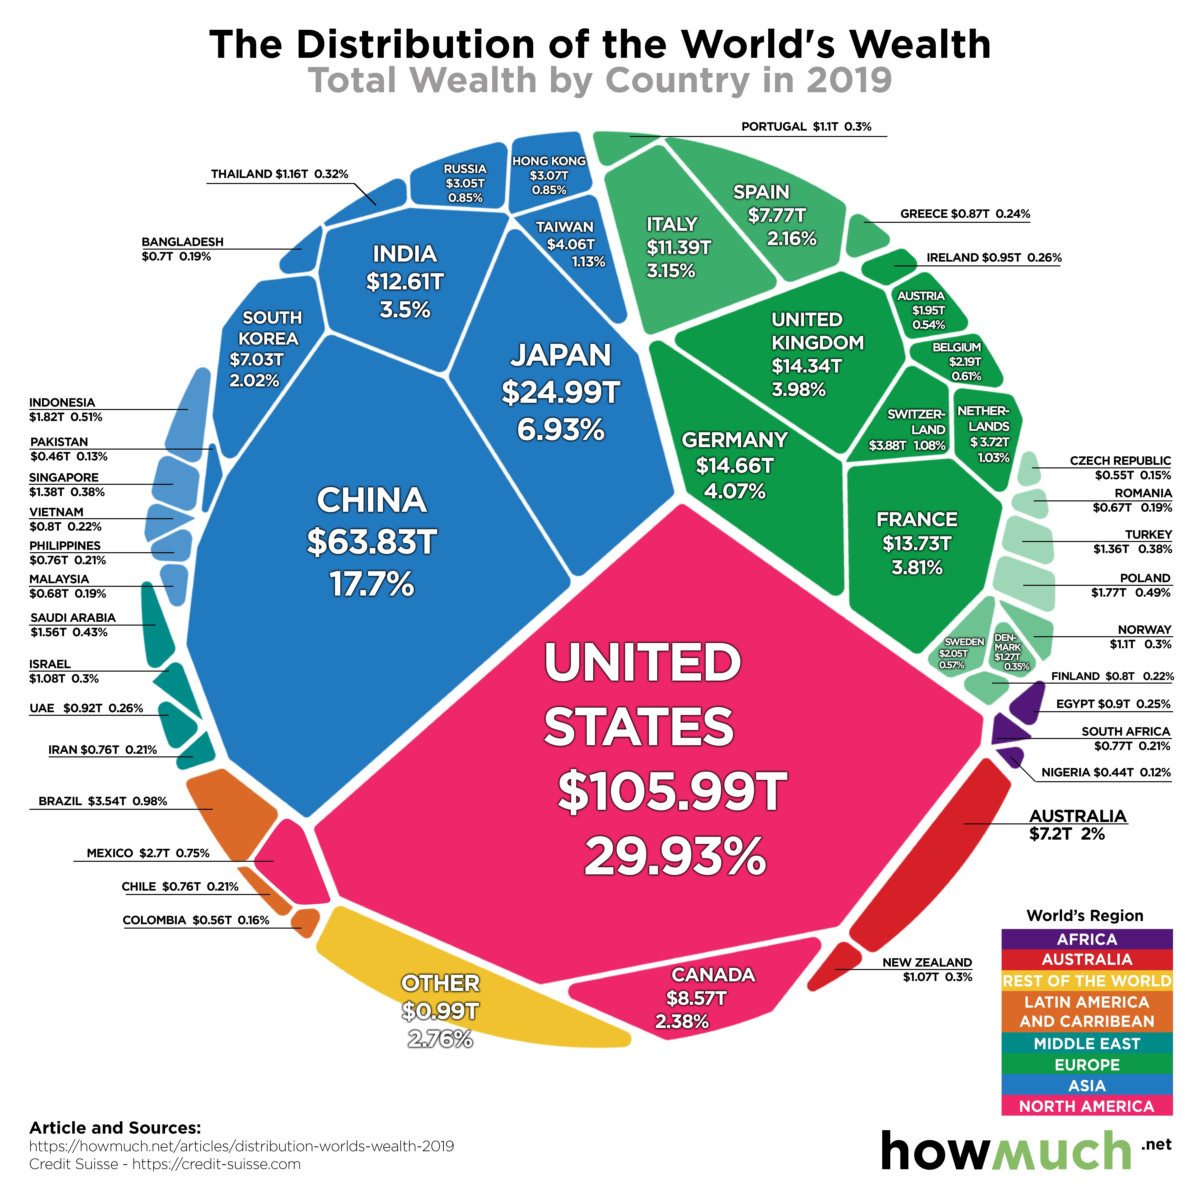 Distribution of the World's Wealth